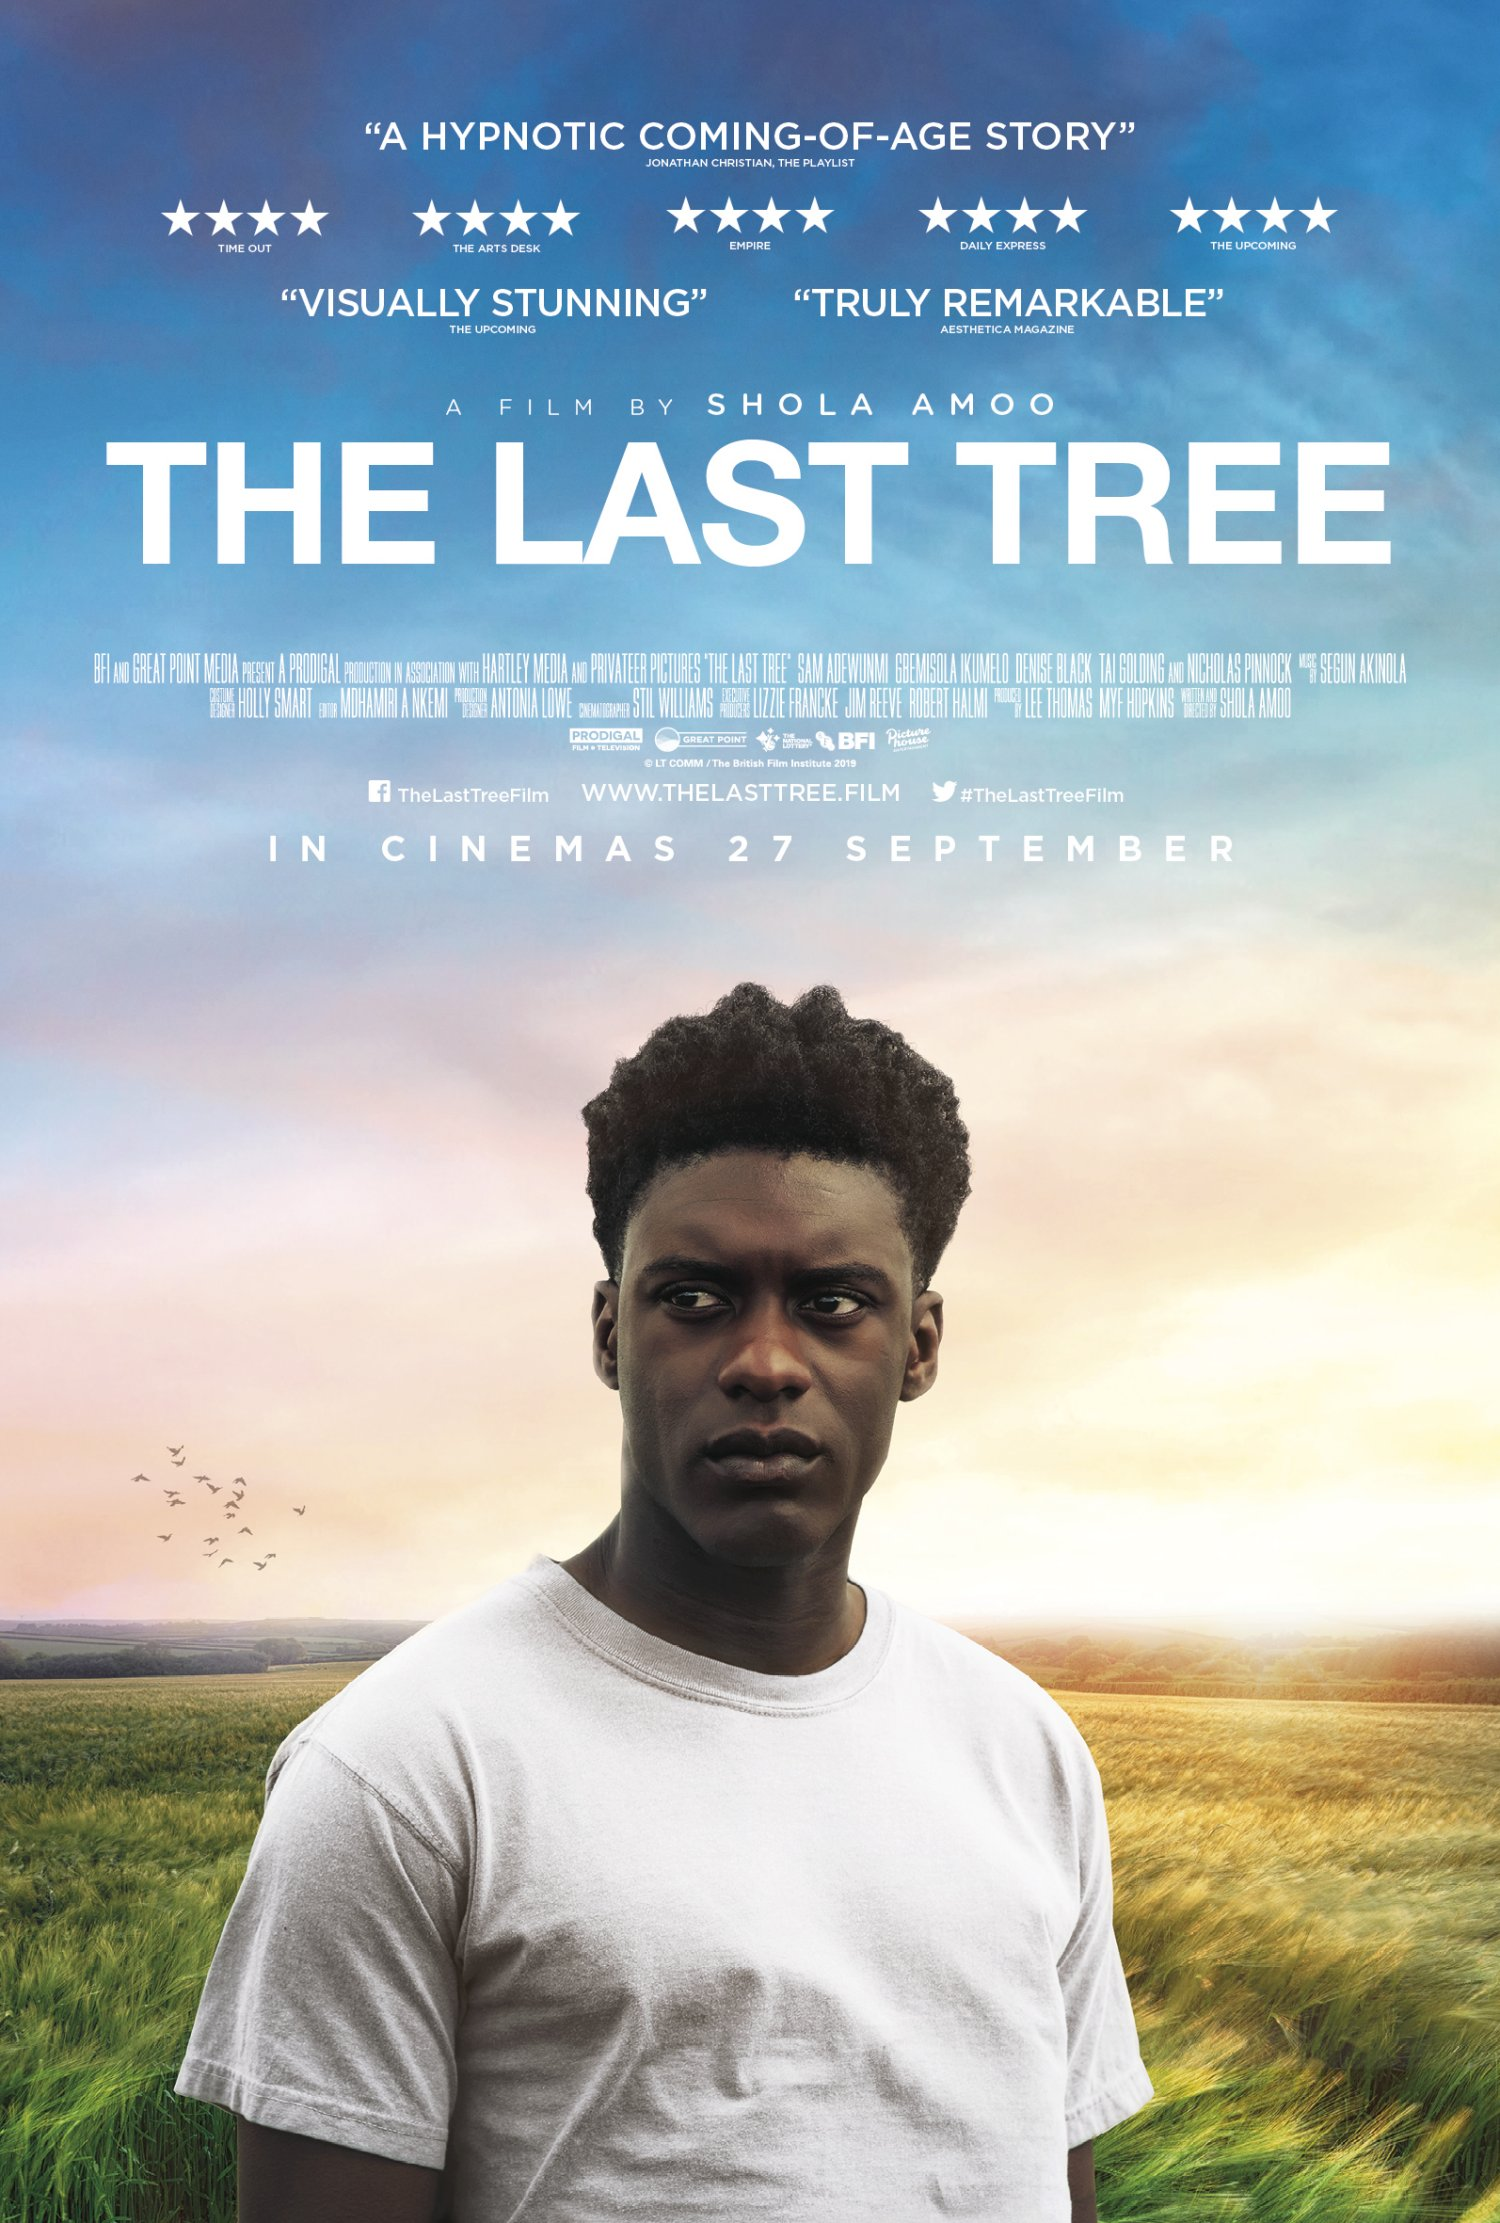 THE LAST TREE_1SHEET_IN CINEMAS 27 SEPTEMBER